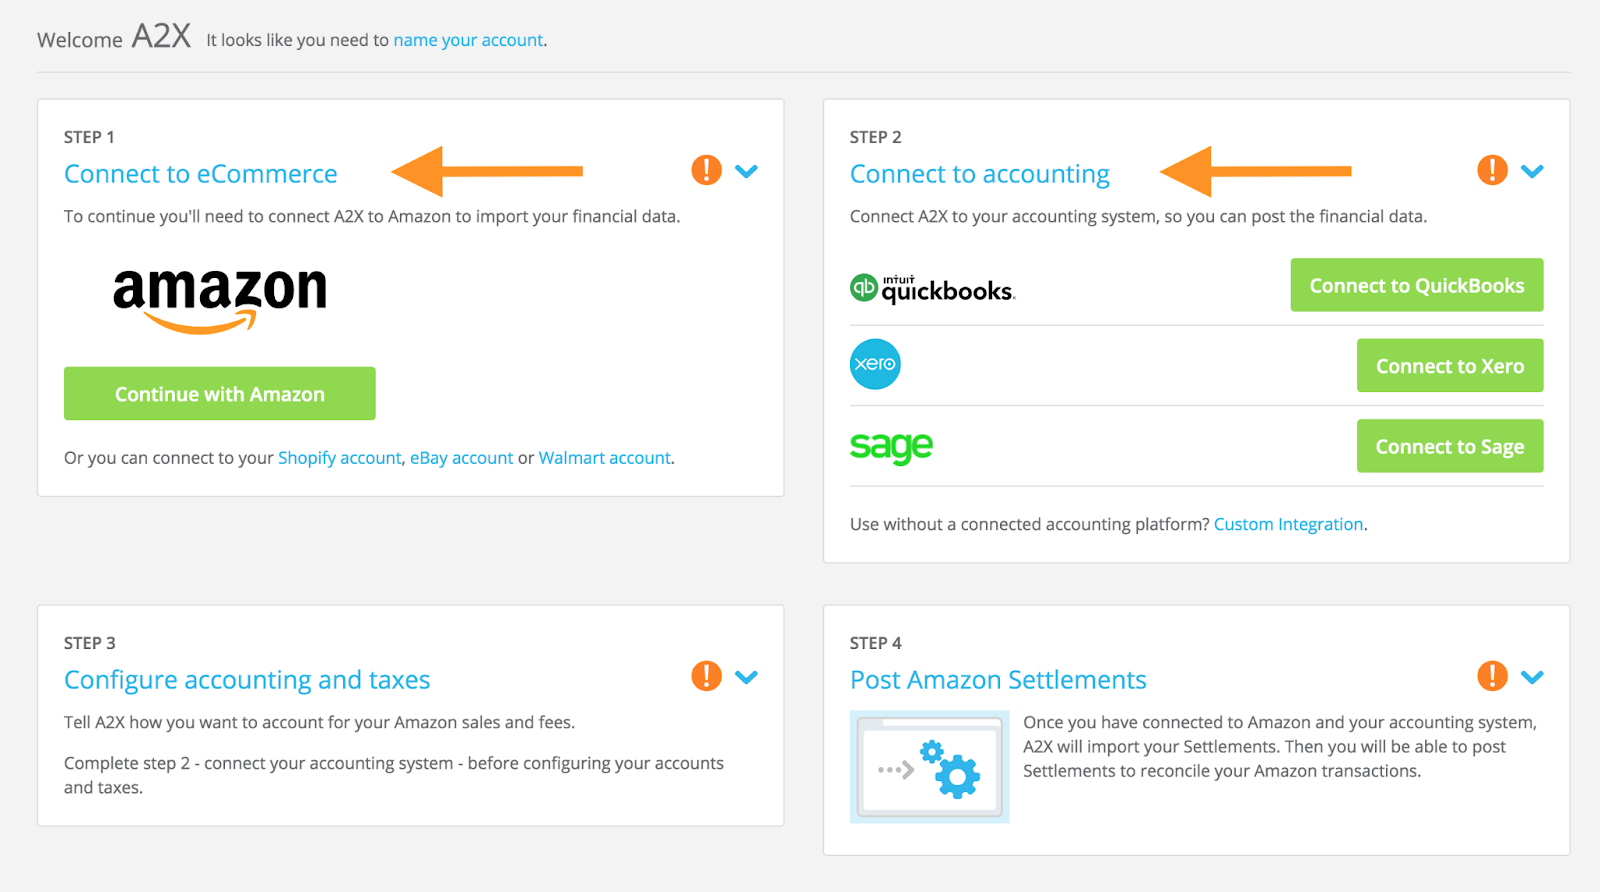 A2X dashboard to connect accounts